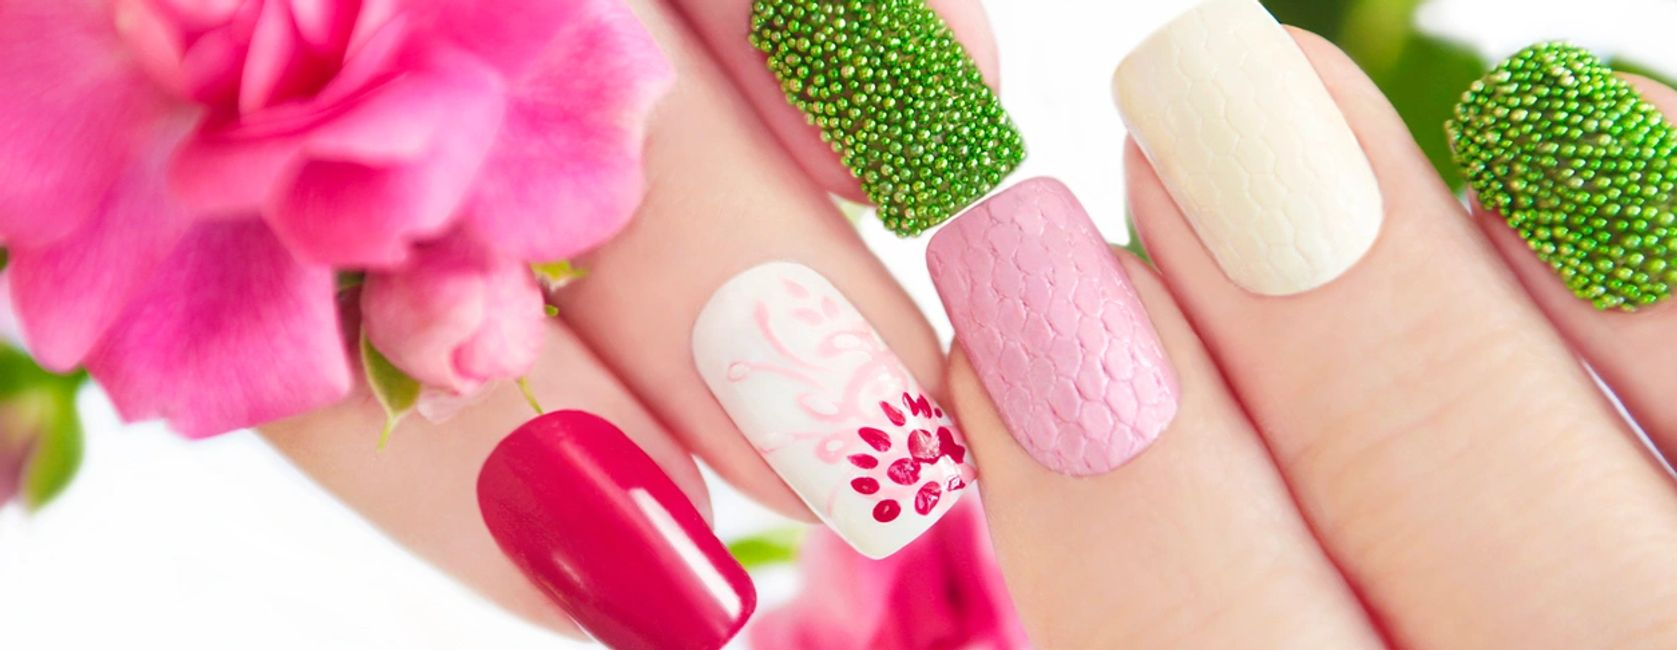 Formation pose ongles décorations nail art formation ongles gel uv led acrylique résine&poudre nails